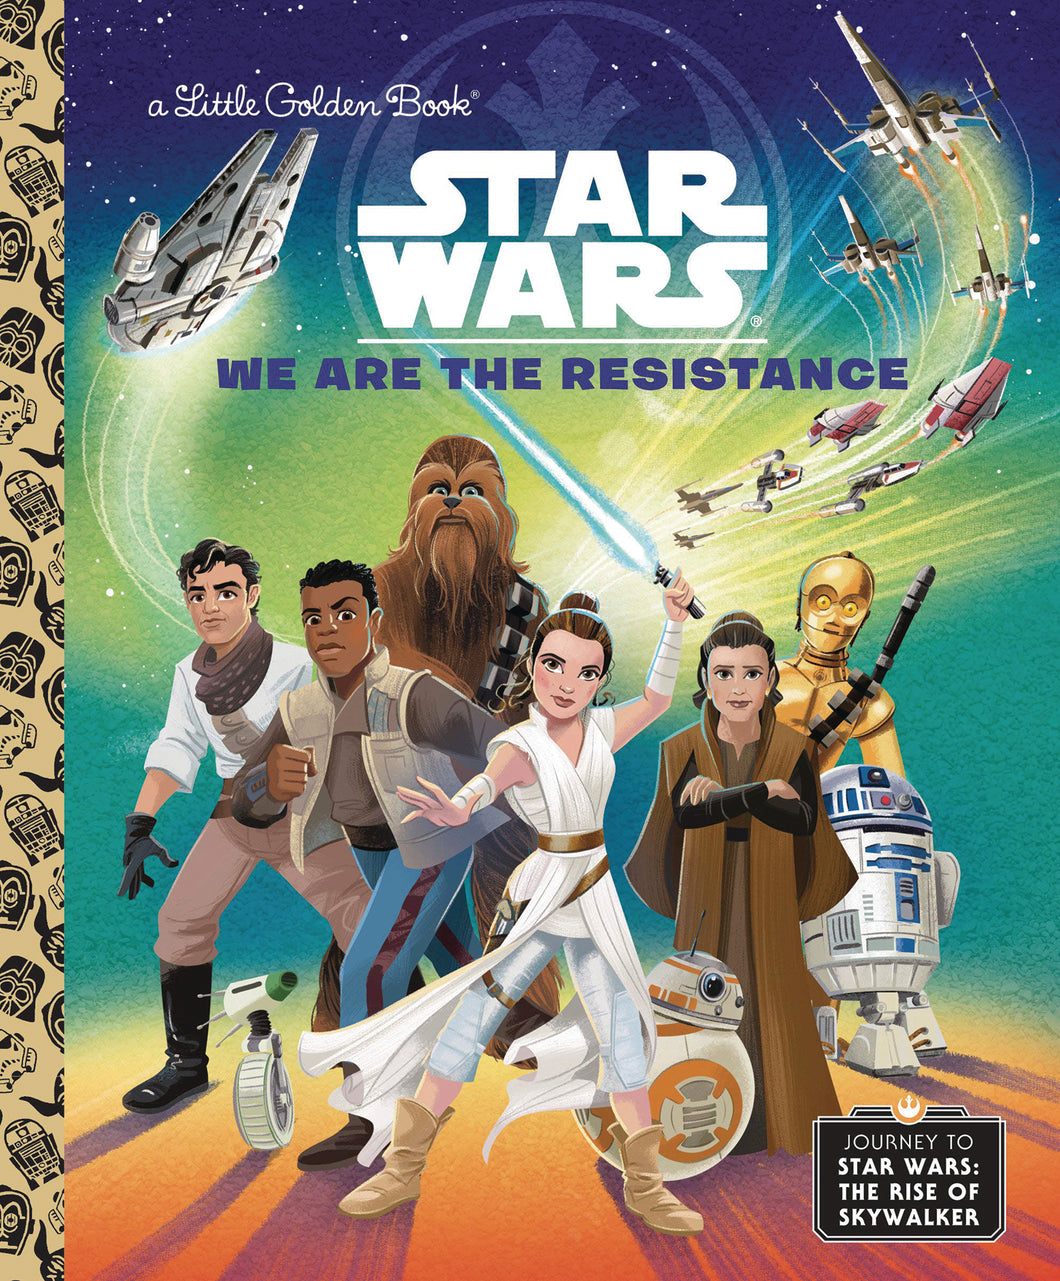 STAR WARS LITTLE GOLDEN BOOK WE ARE RESISTANCE (C: 0-1-0)